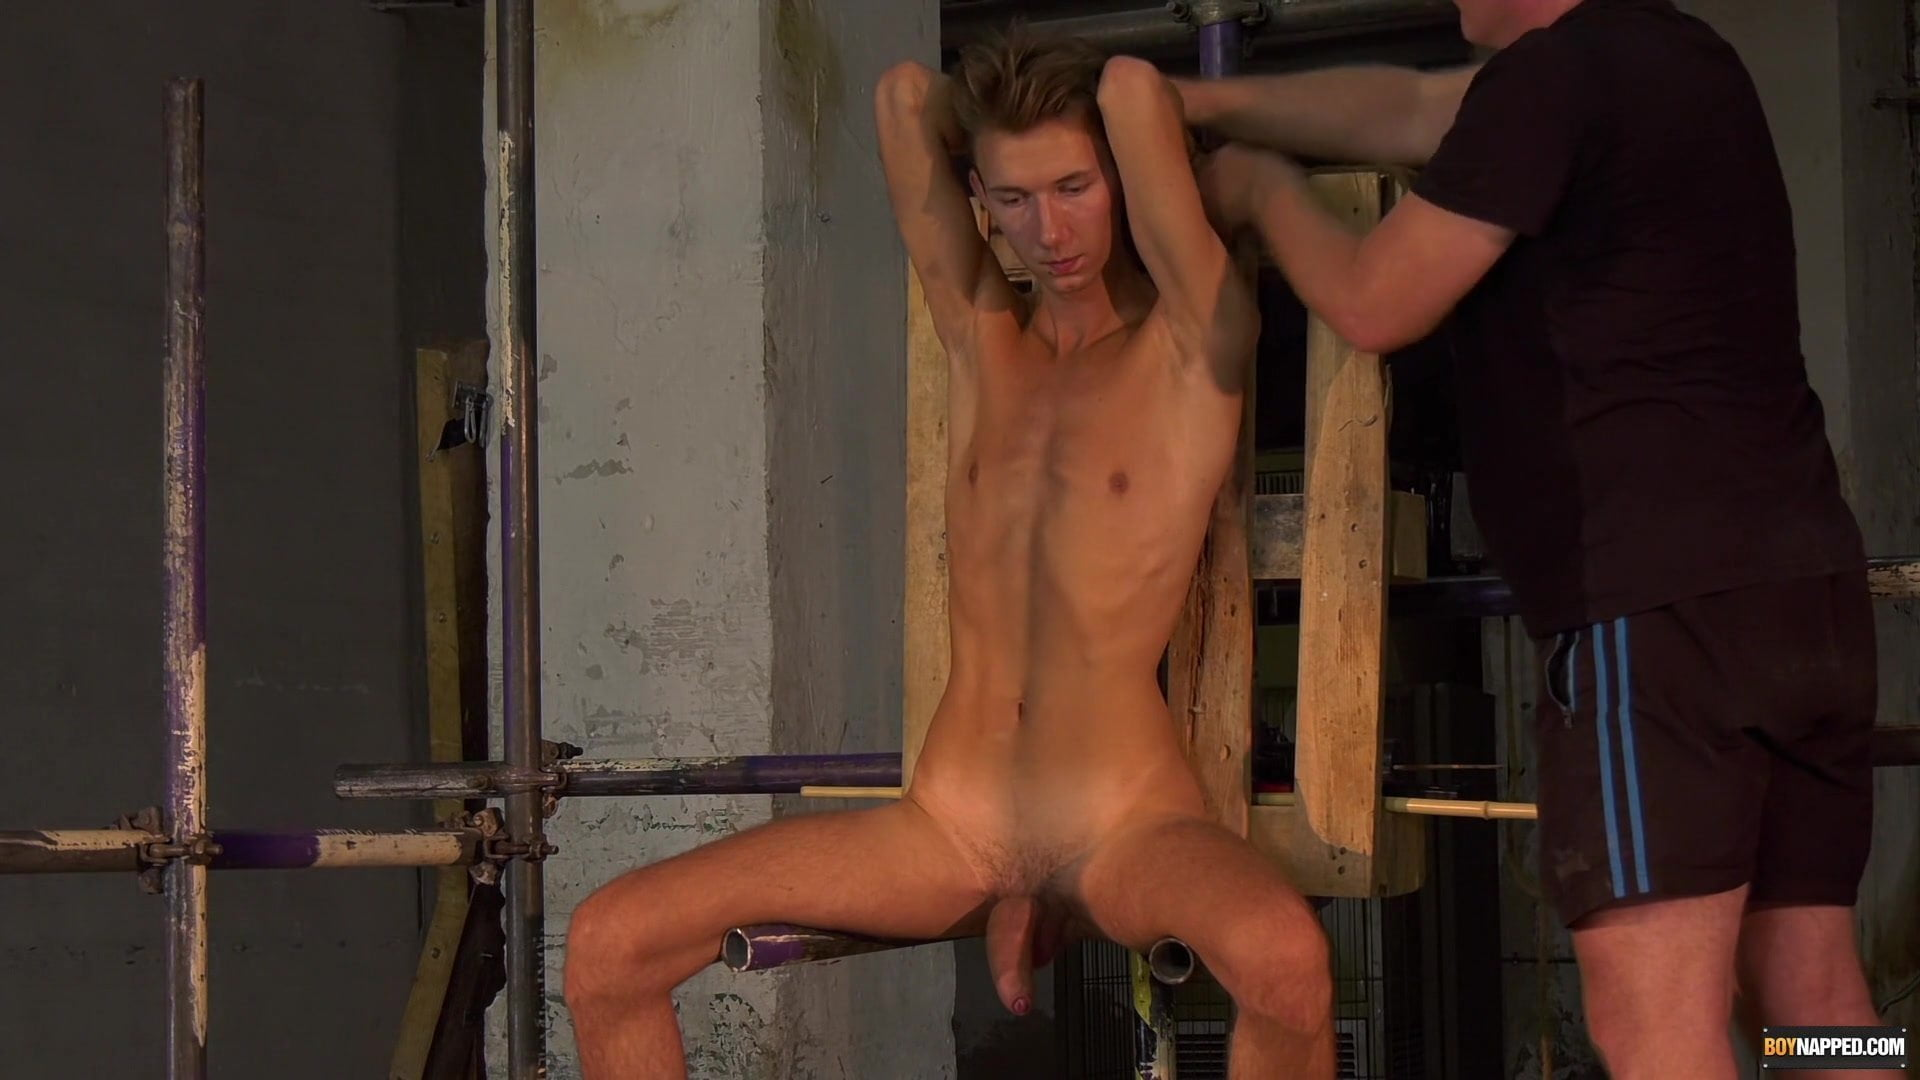 Sub twink interviewed earlier than bondage and domination